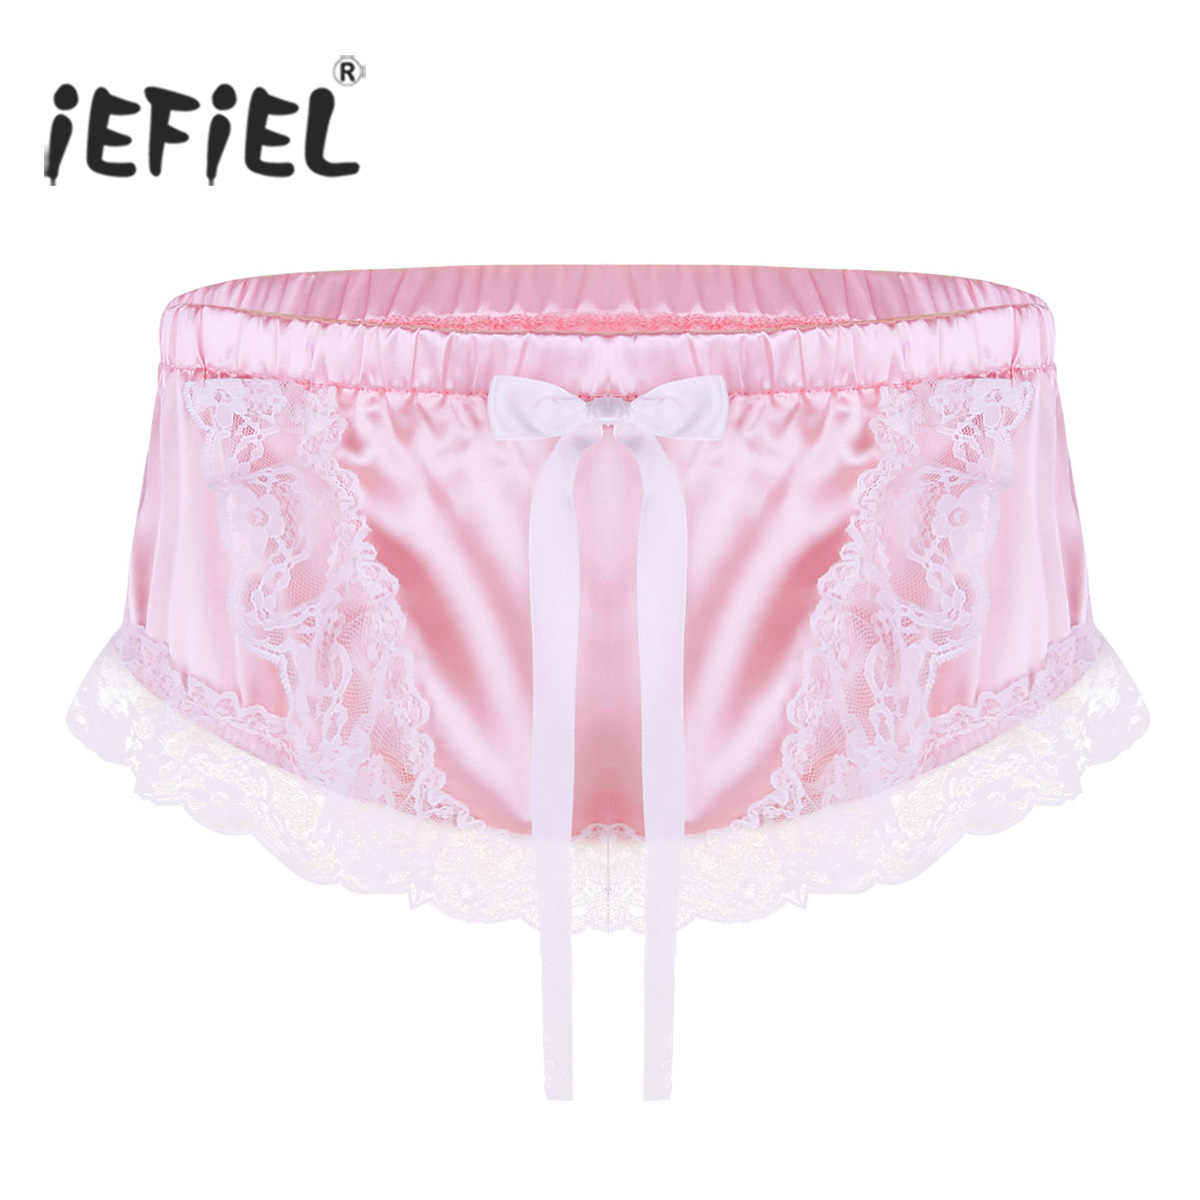 aca01b684602 Sexy Sissy Gay Mens Lingerie Panties Shiny Soft Satin Ruffled Lace Floral  and Cute Bowknot Briefs